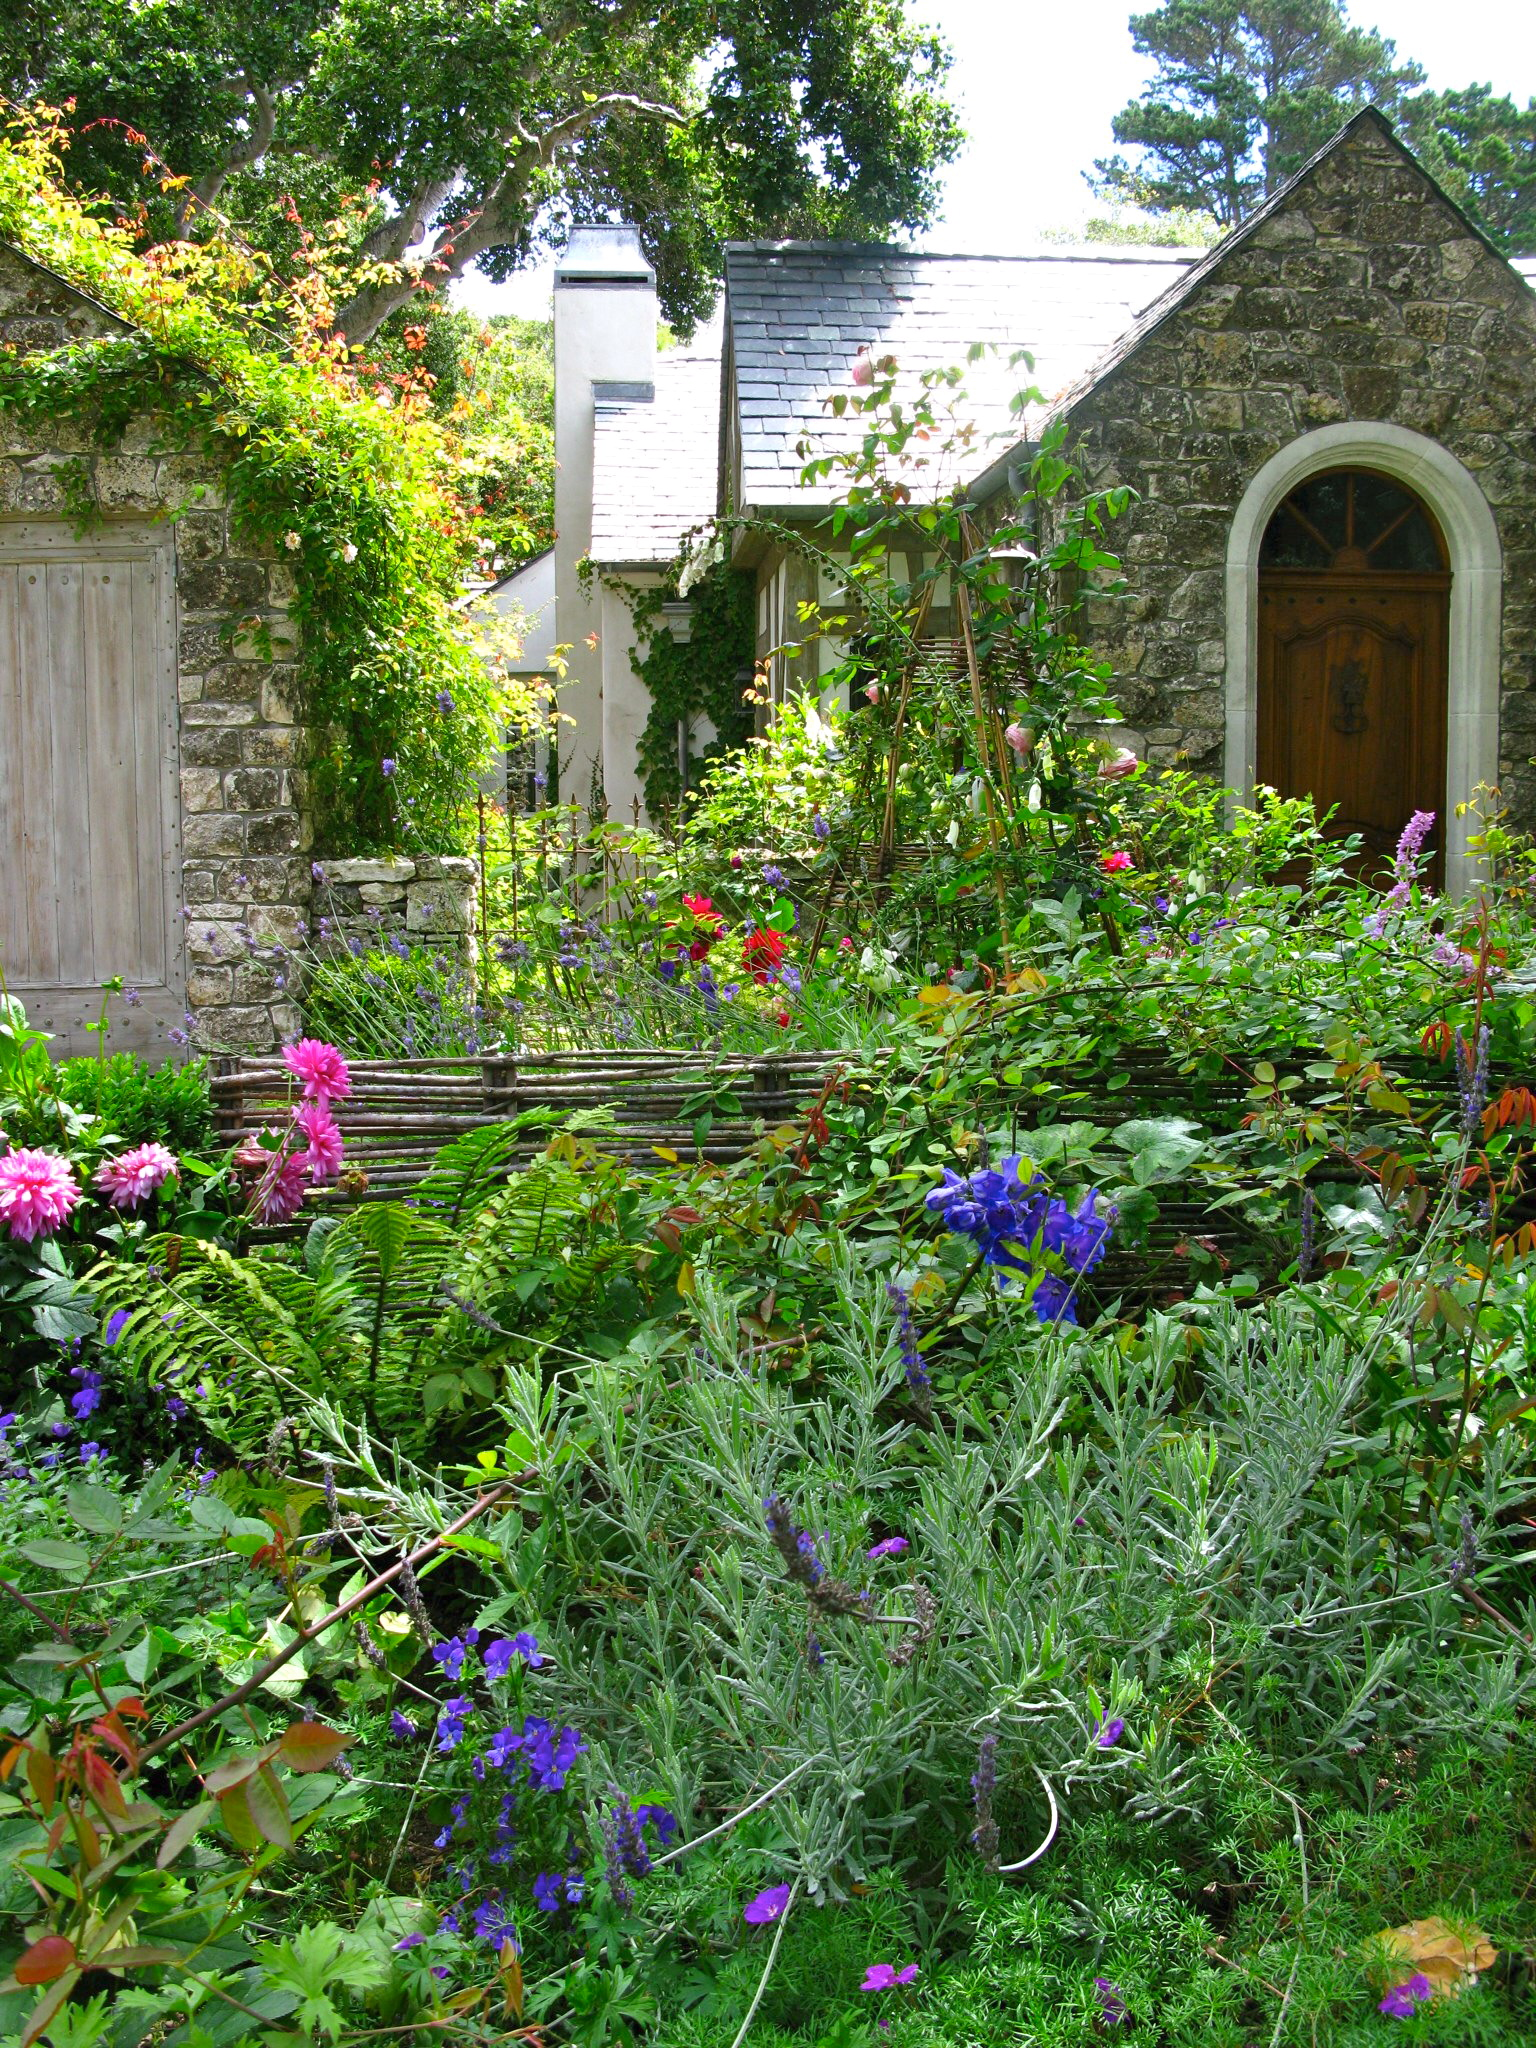 I AM INVITED TO TOUR BIDDLESTONE COTTAGE AND GARDEN